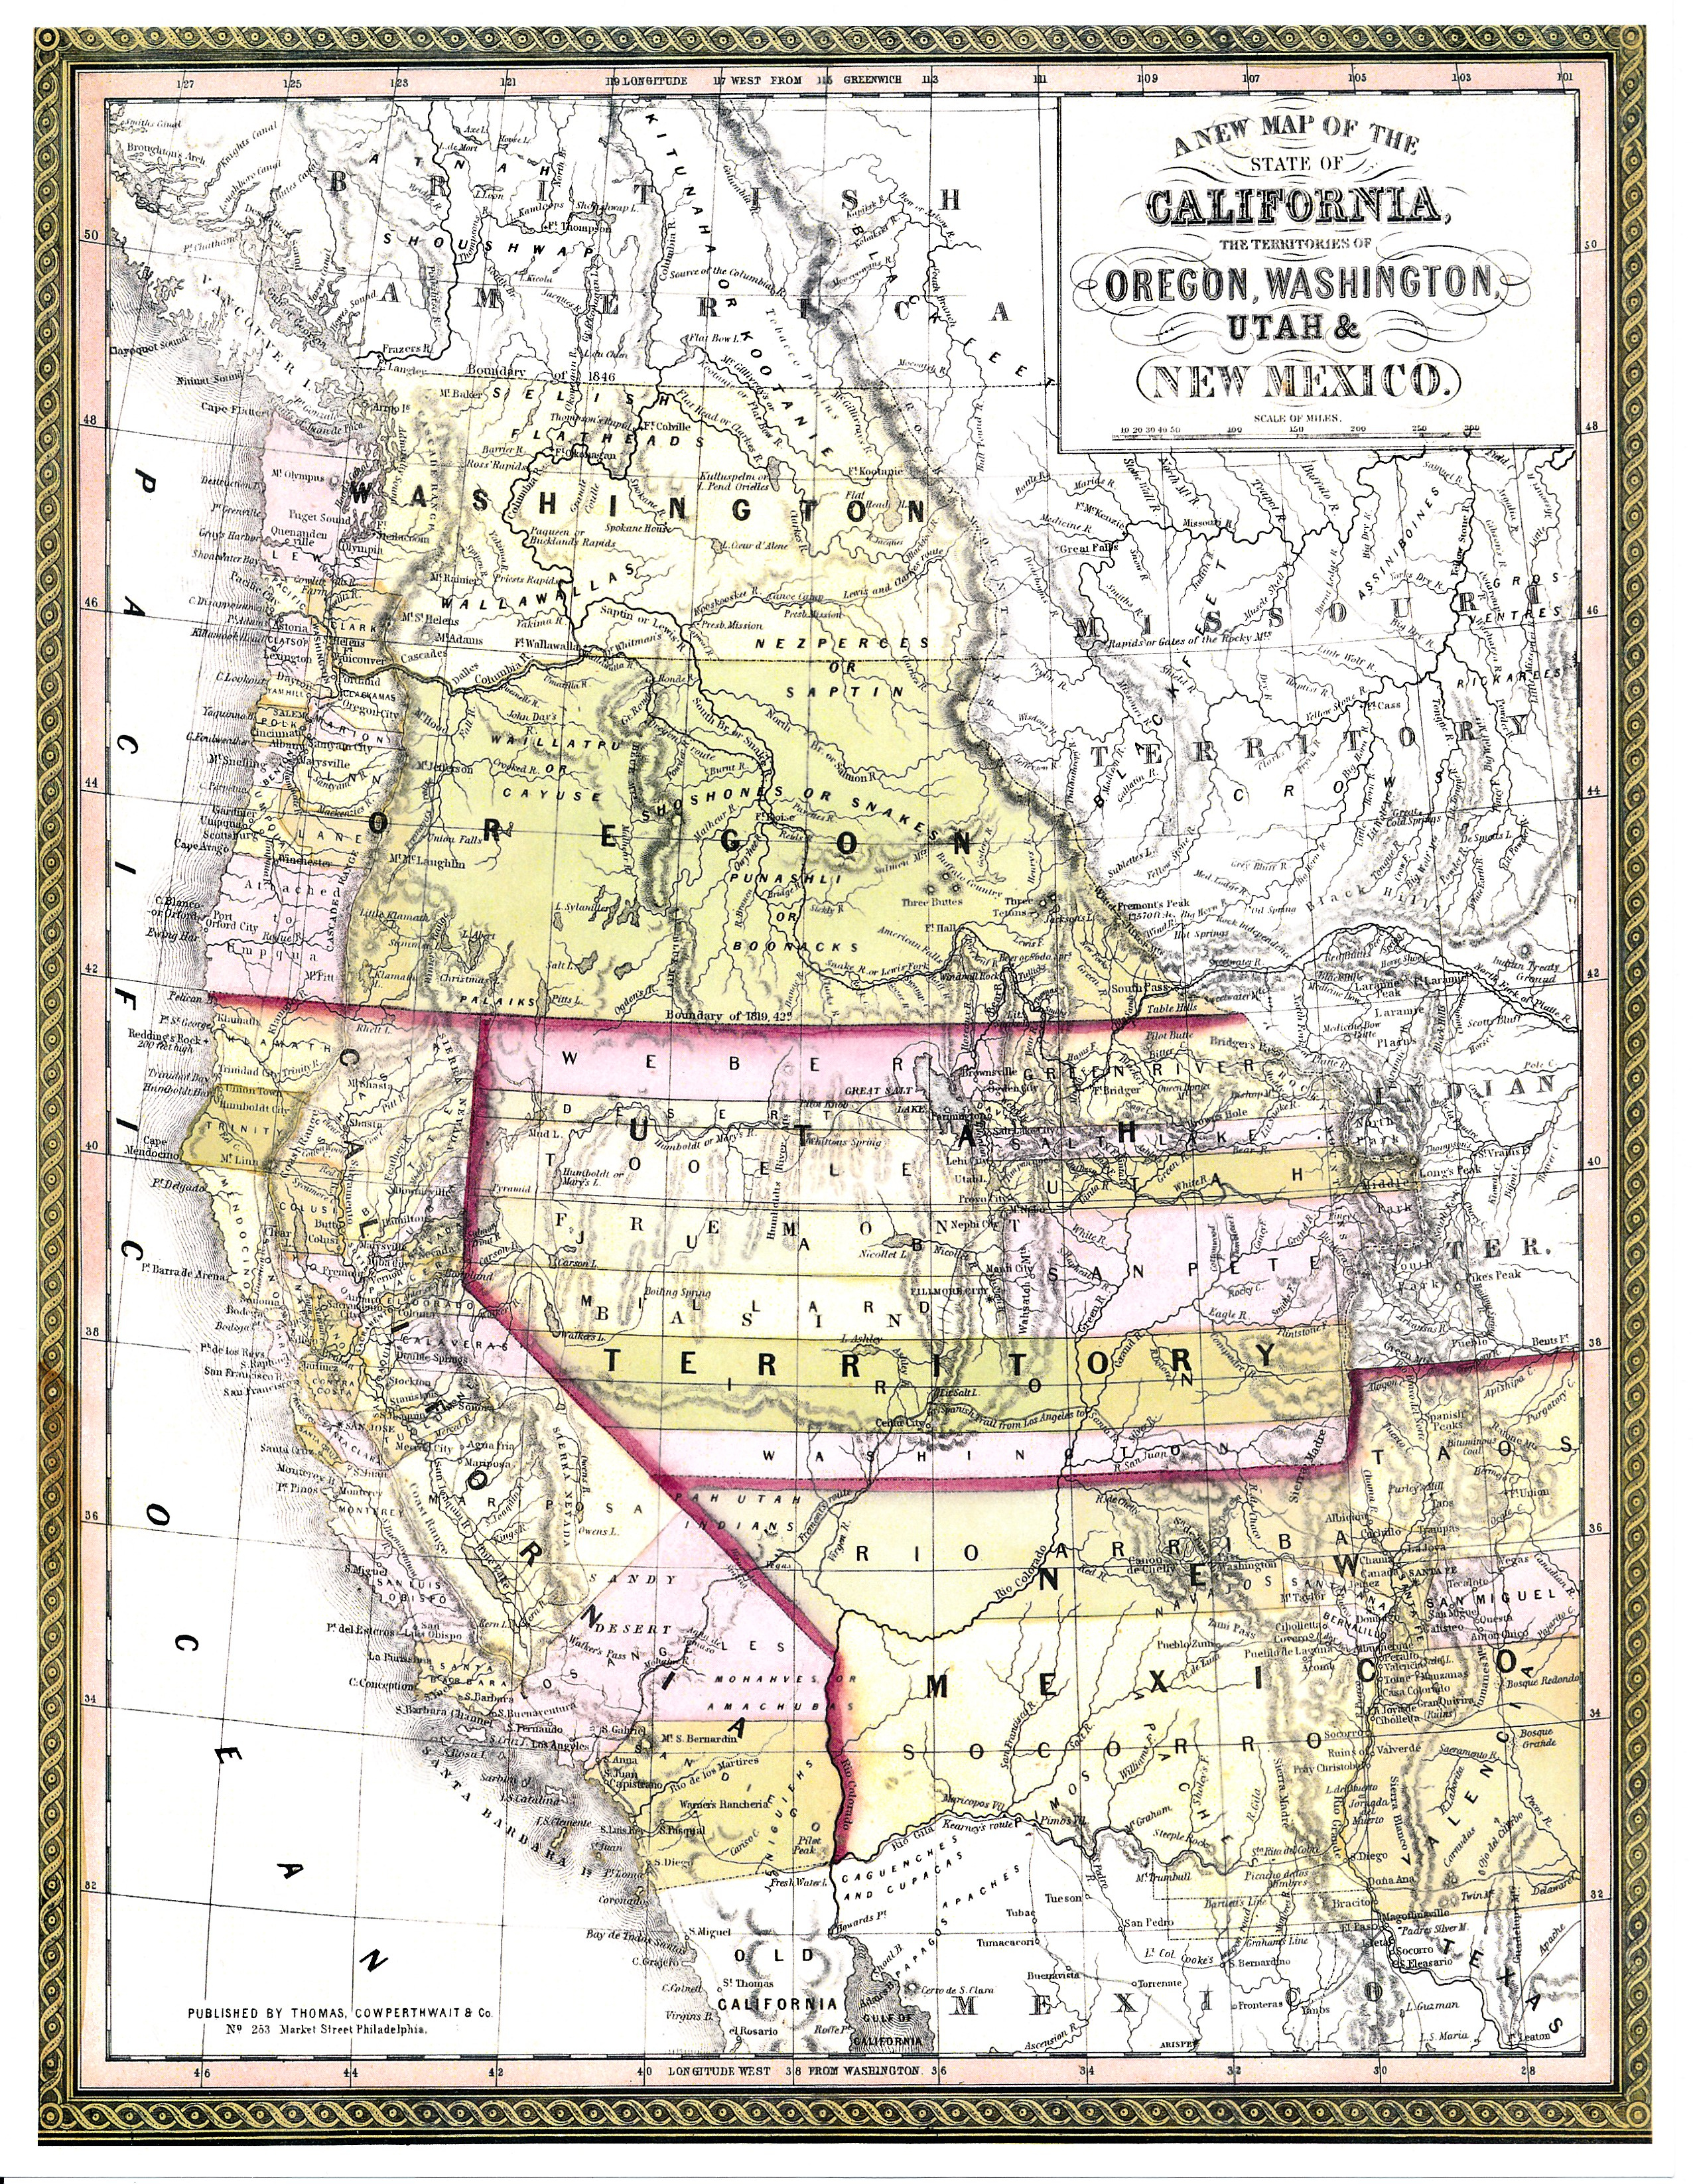 Washington County Maps And Charts - Early California Maps